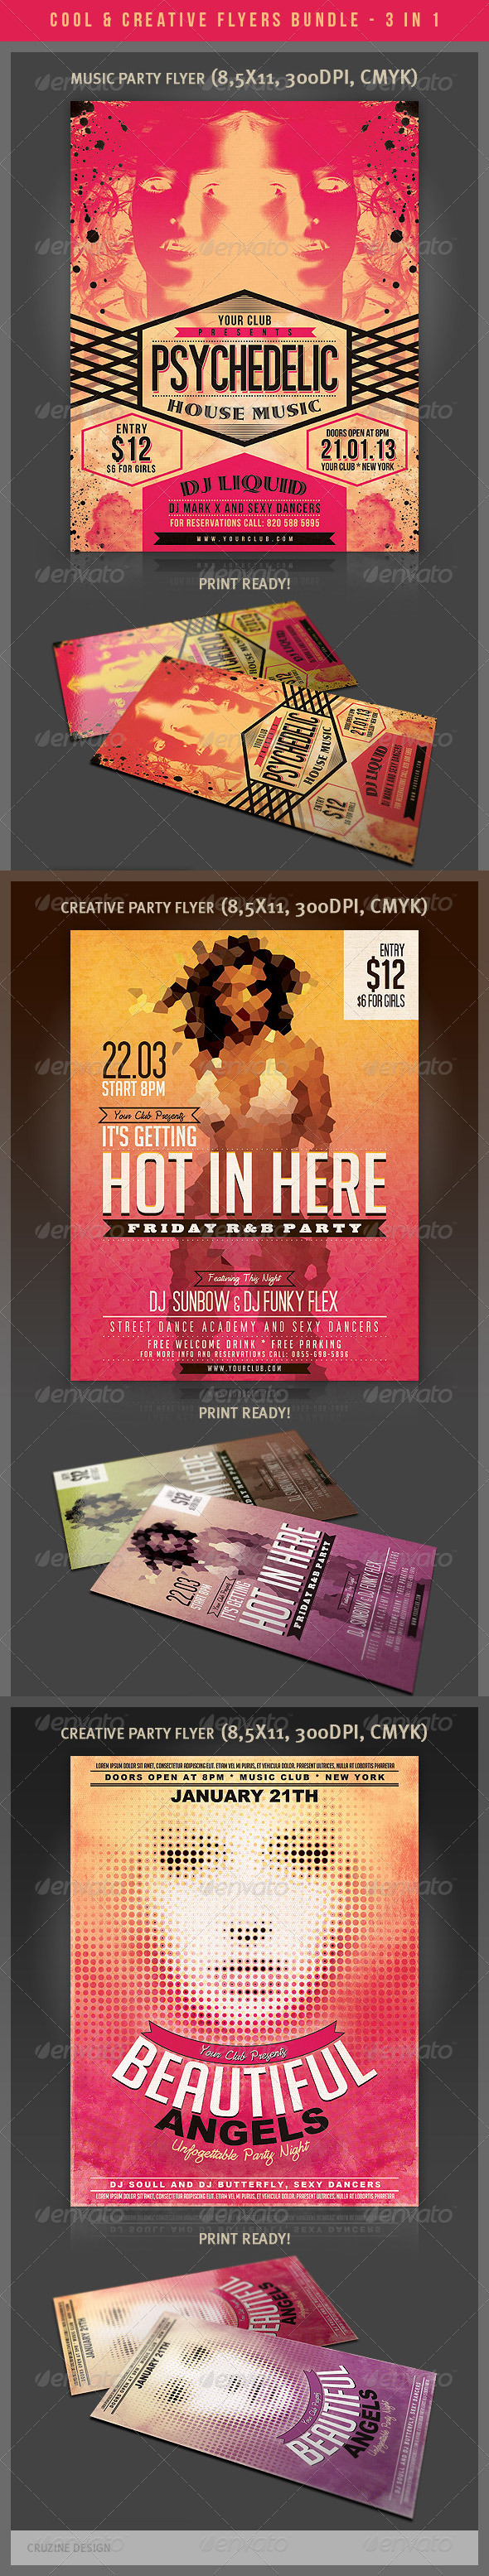 GraphicRiver Cool & Creative Party Flyers Bundle 4023049